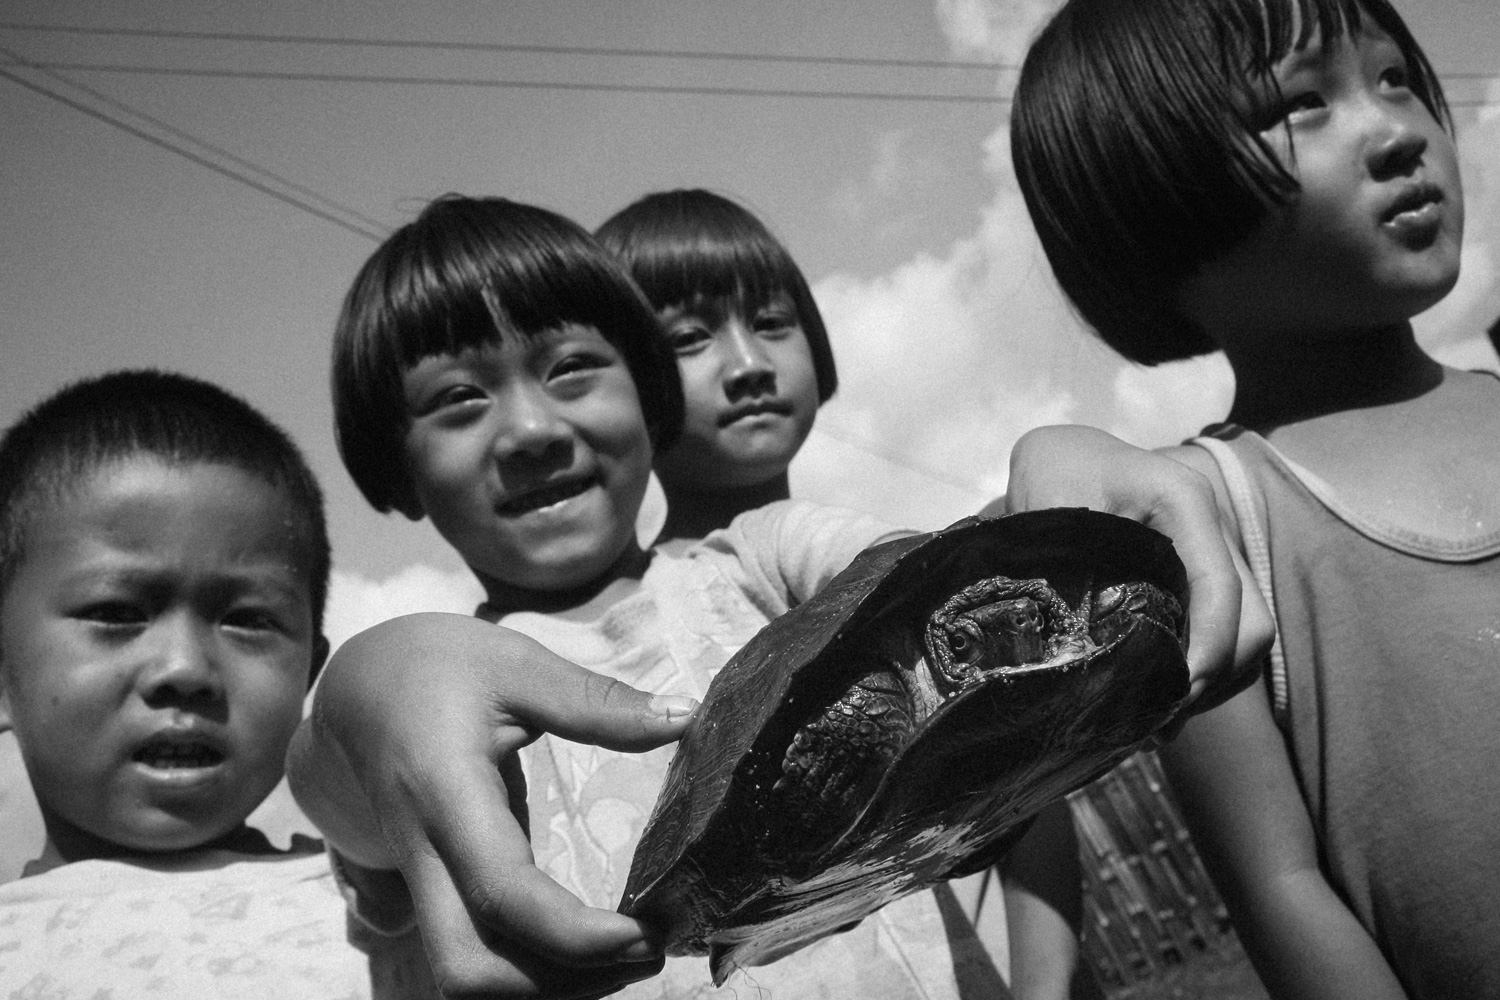 Kachin girls play with their pet turtle in Baan Mai Samakee, Chiang Rai, Thailand